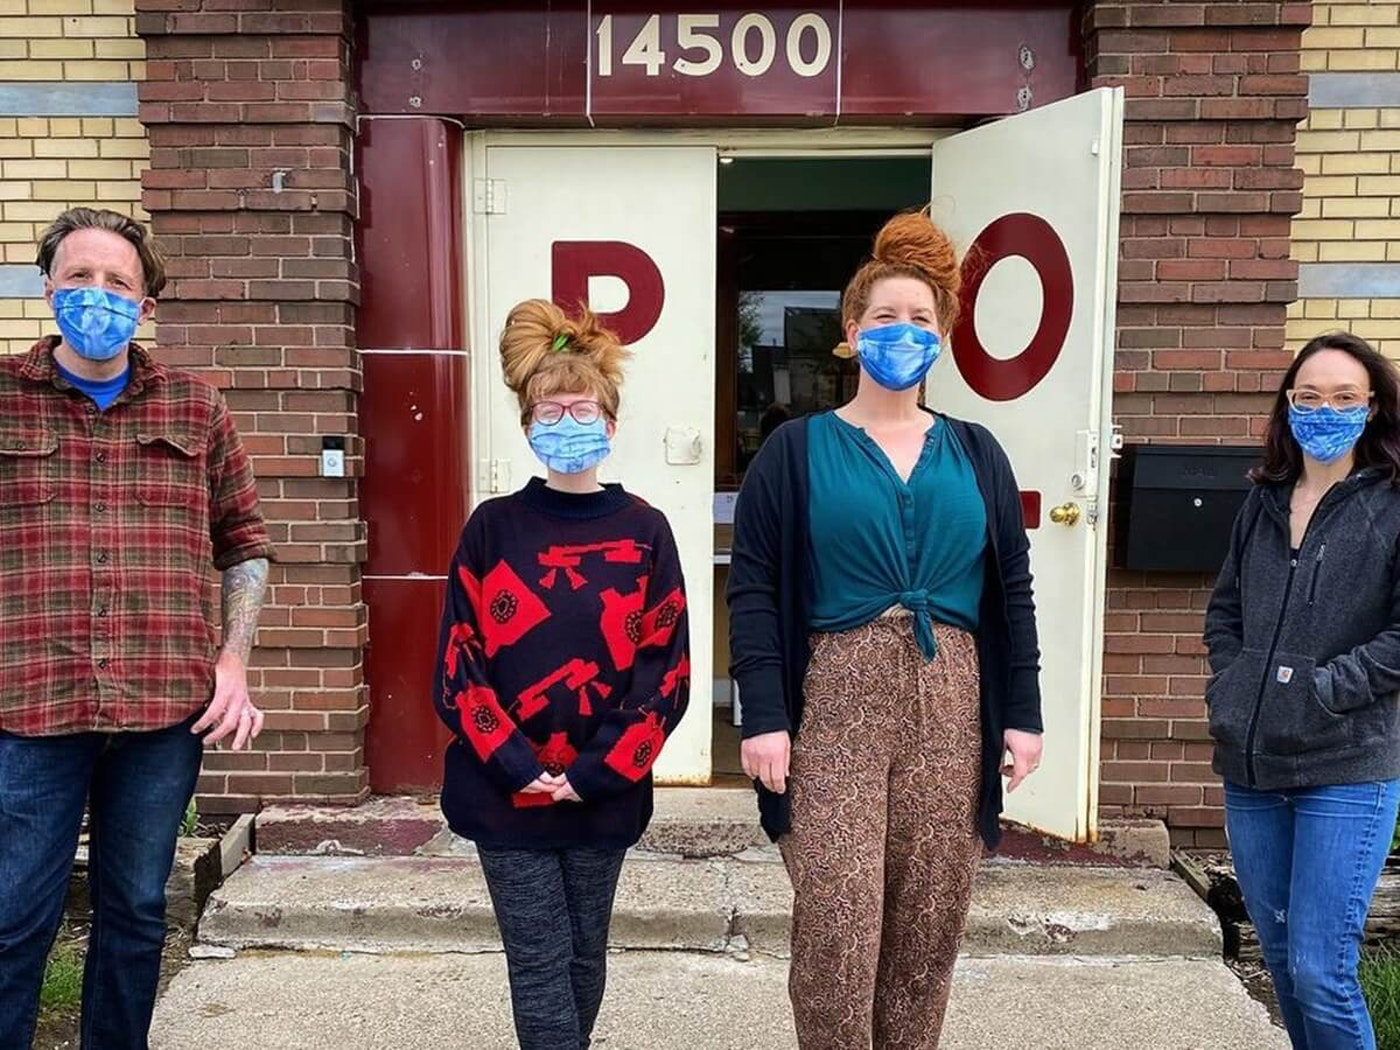 A small business in Detroit making masks for the coronavirus pandemic, supported by Michigan Women Forward. Photo courtesy of Michigan Women Forward.